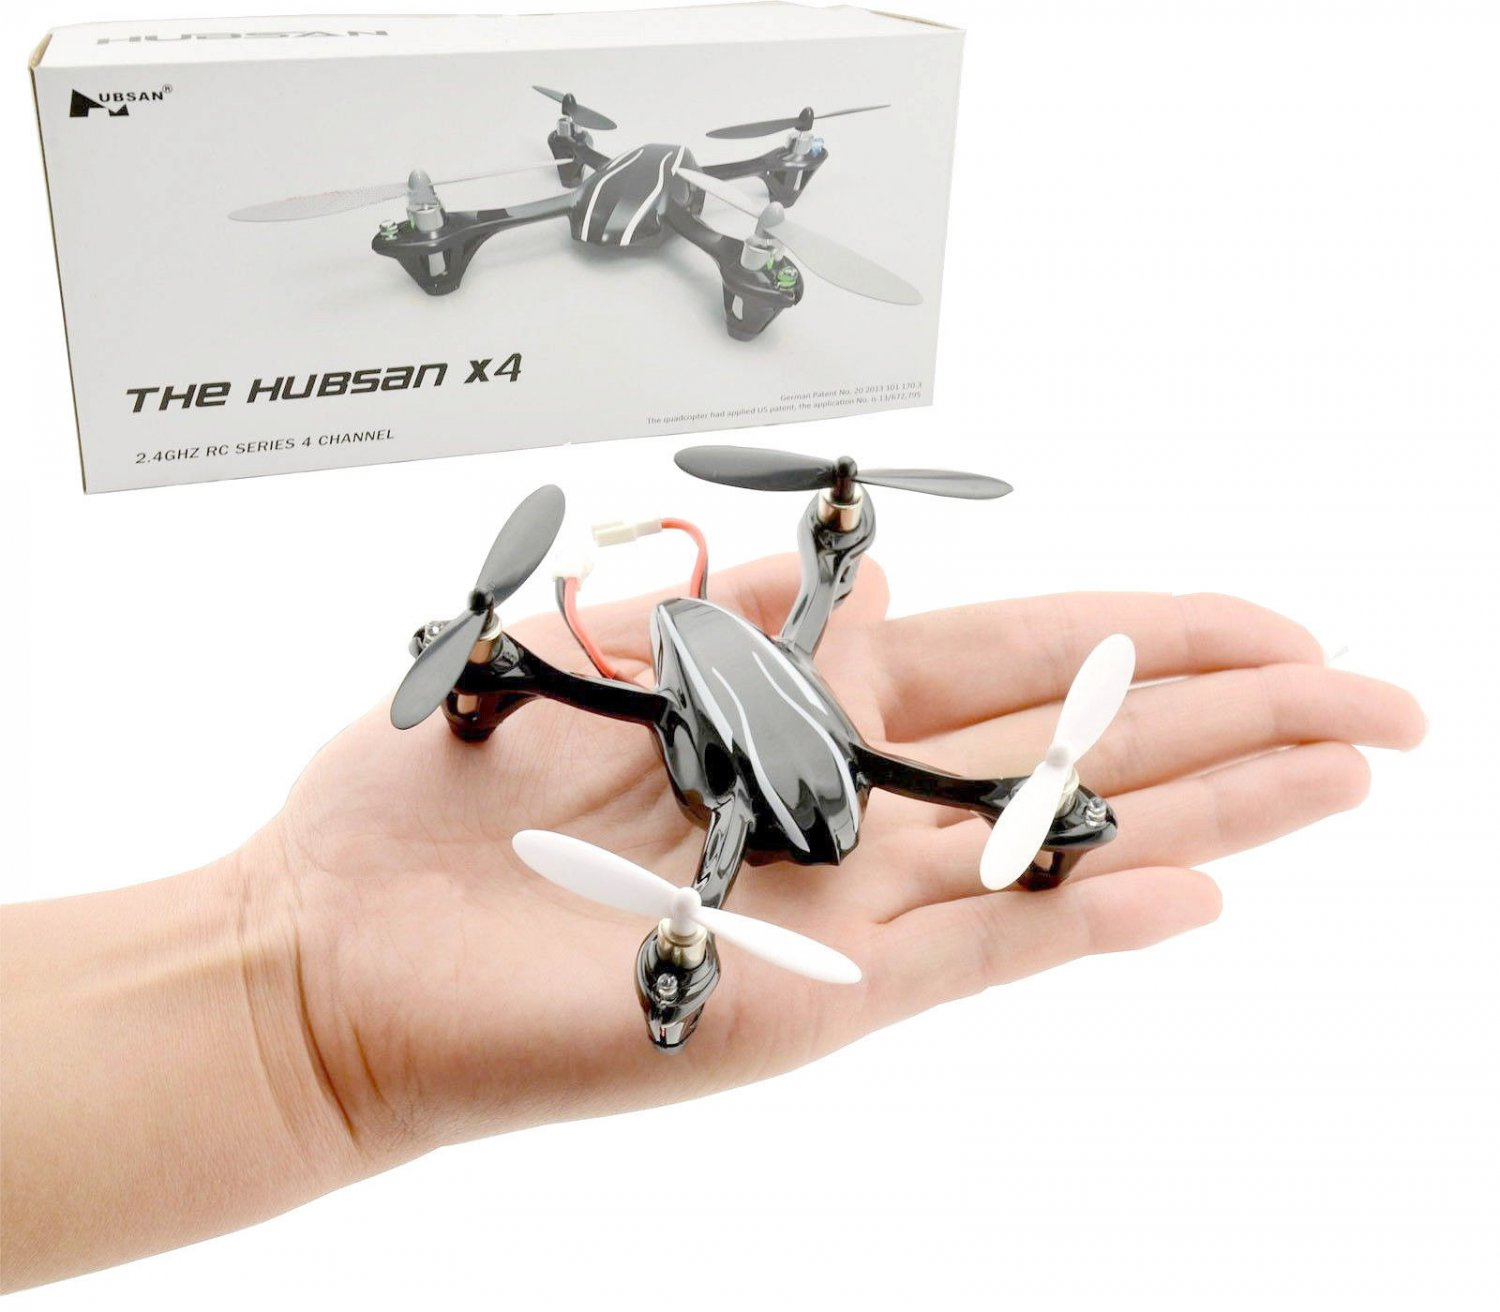 New hubsan x4 h107l quadcopter upgrade version w led for Hubsan x4 h107l motor upgrade